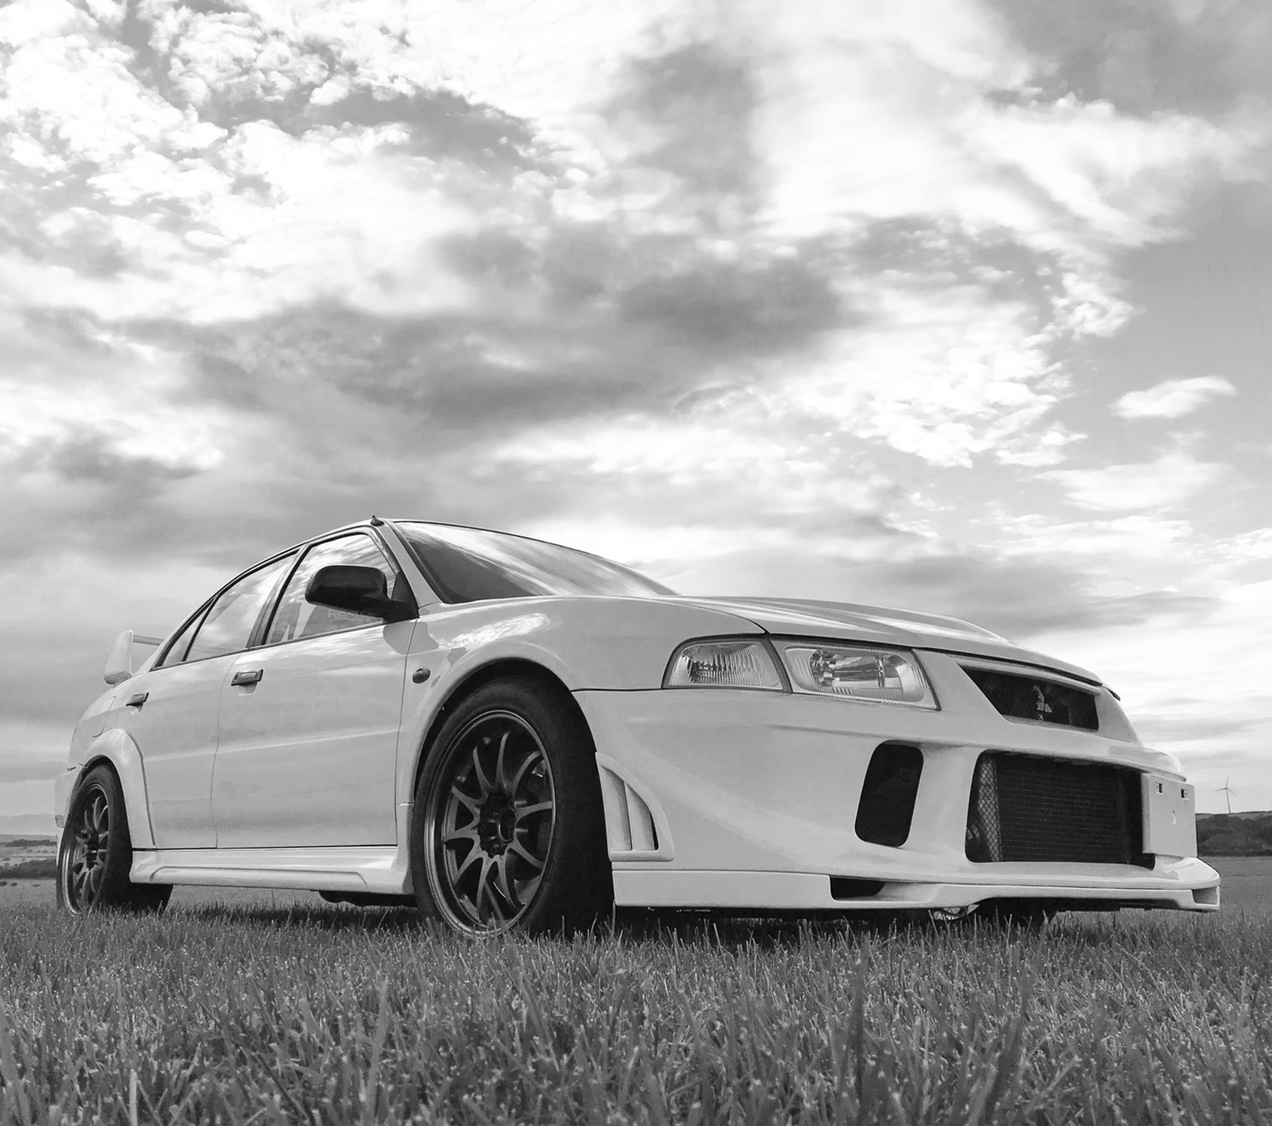 Mitsubishi Lancer Register Forum: Clean Evo 6 Rs On A Nice Day